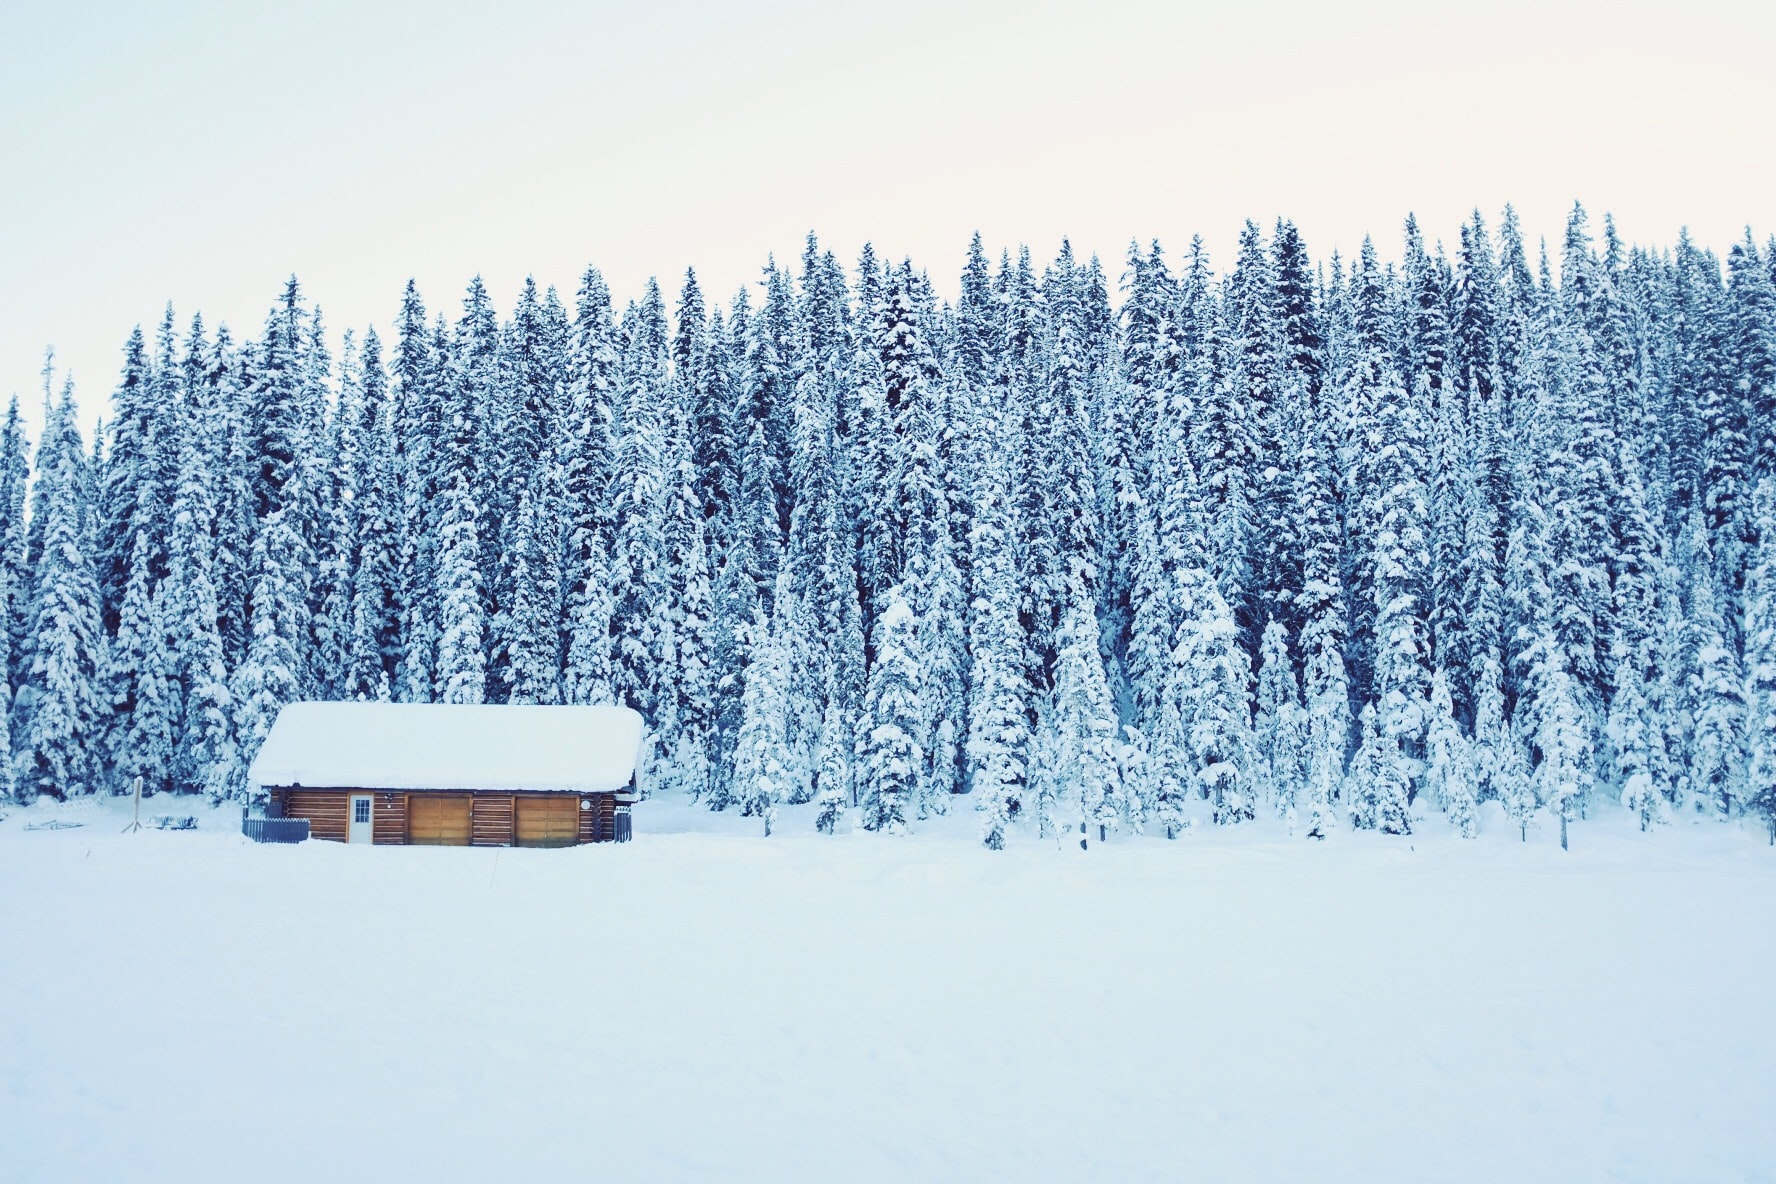 A log cabin next to a tree-lined forest after a heavy snowfall